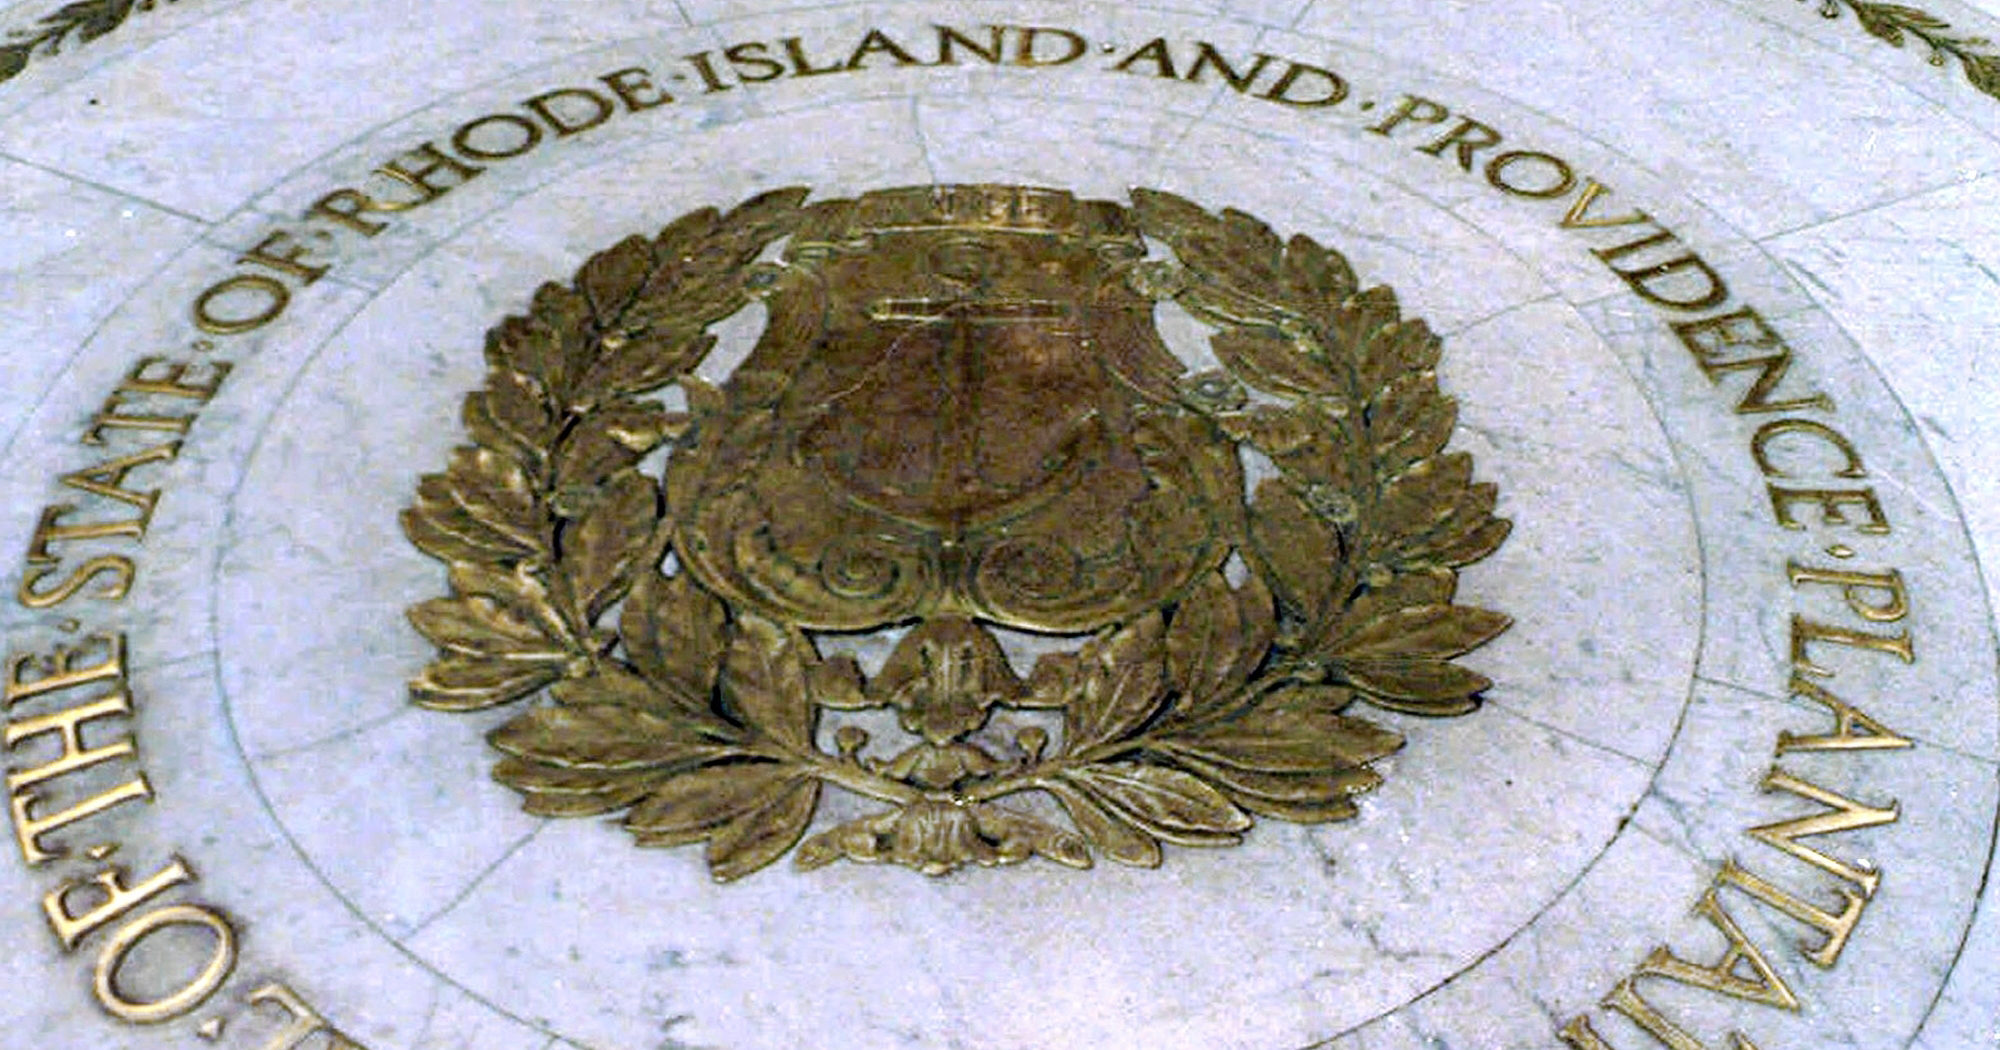 """This Jan. 21, 2000, file photo shows the seal bearing the official name """"State of Rhode Island and Providence Plantations"""" on the floor of the Statehouse rotunda in Providence, Rhode Island."""